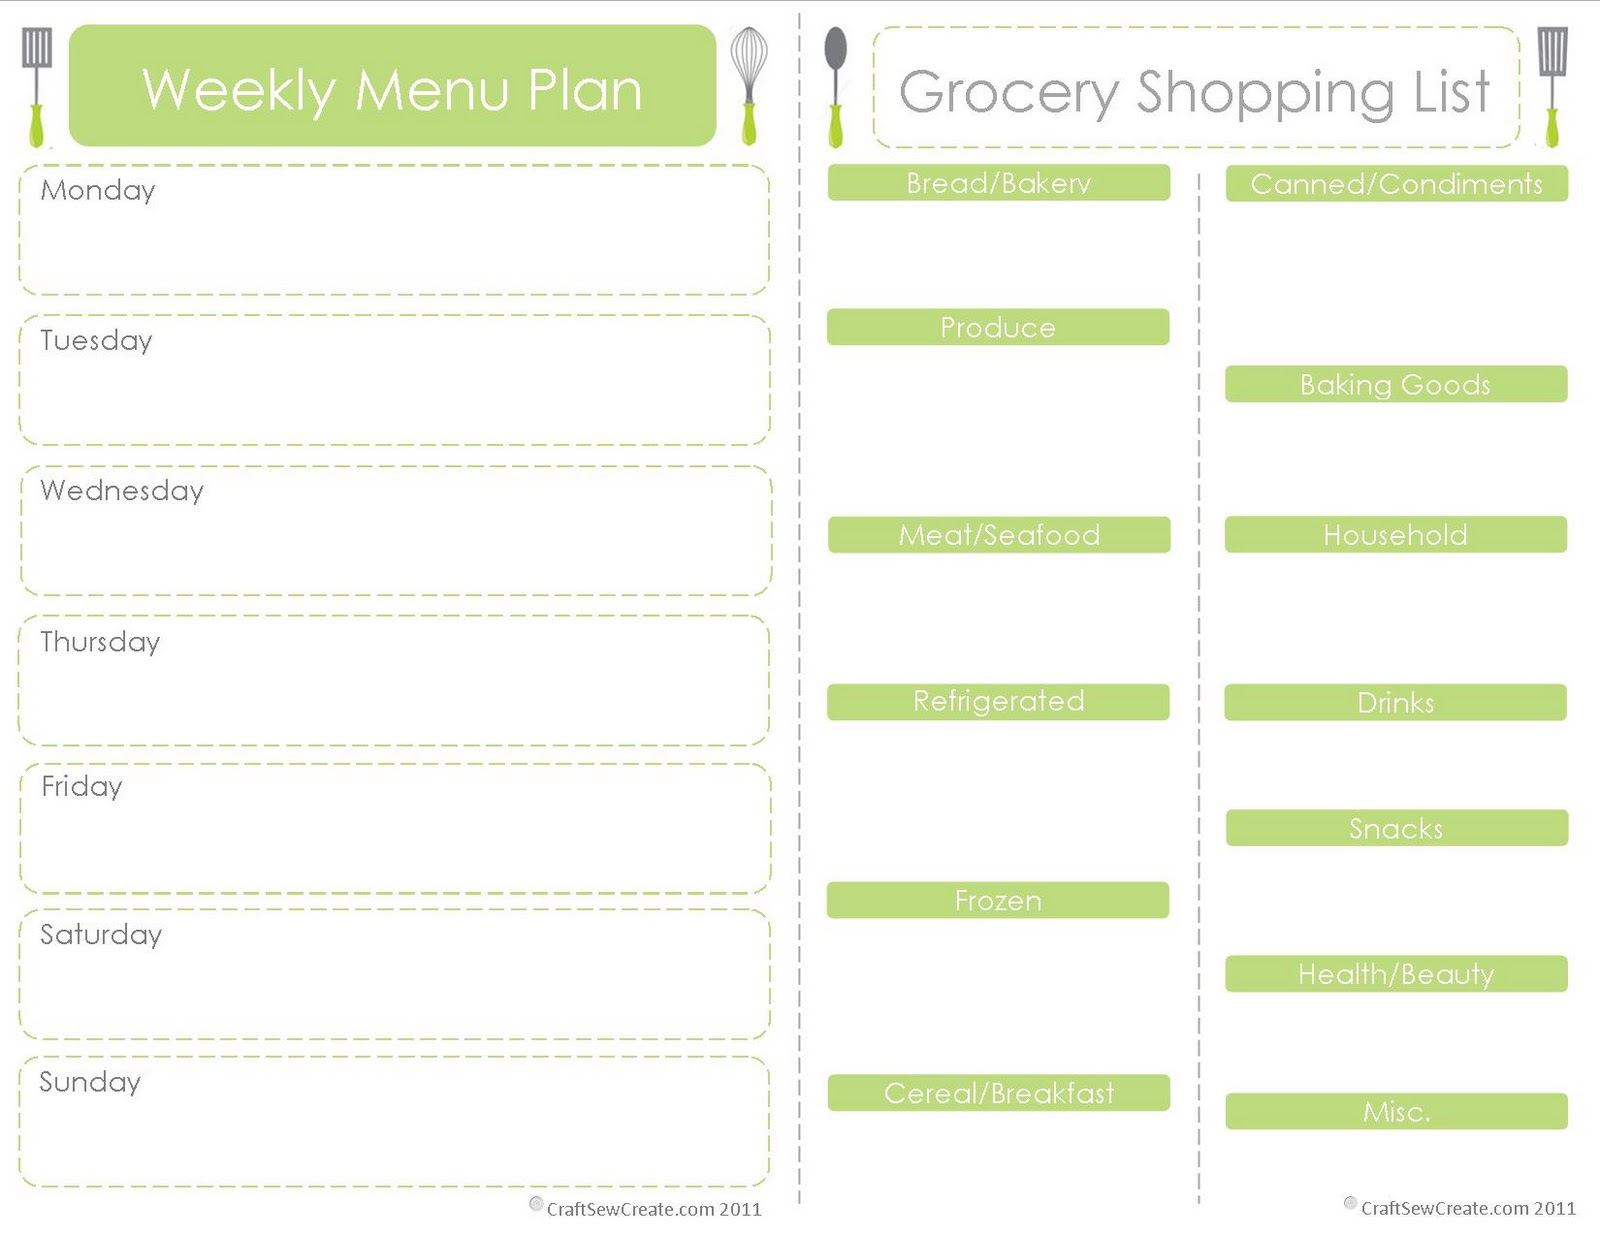 FREE Printable Menu Plan + Shopping List